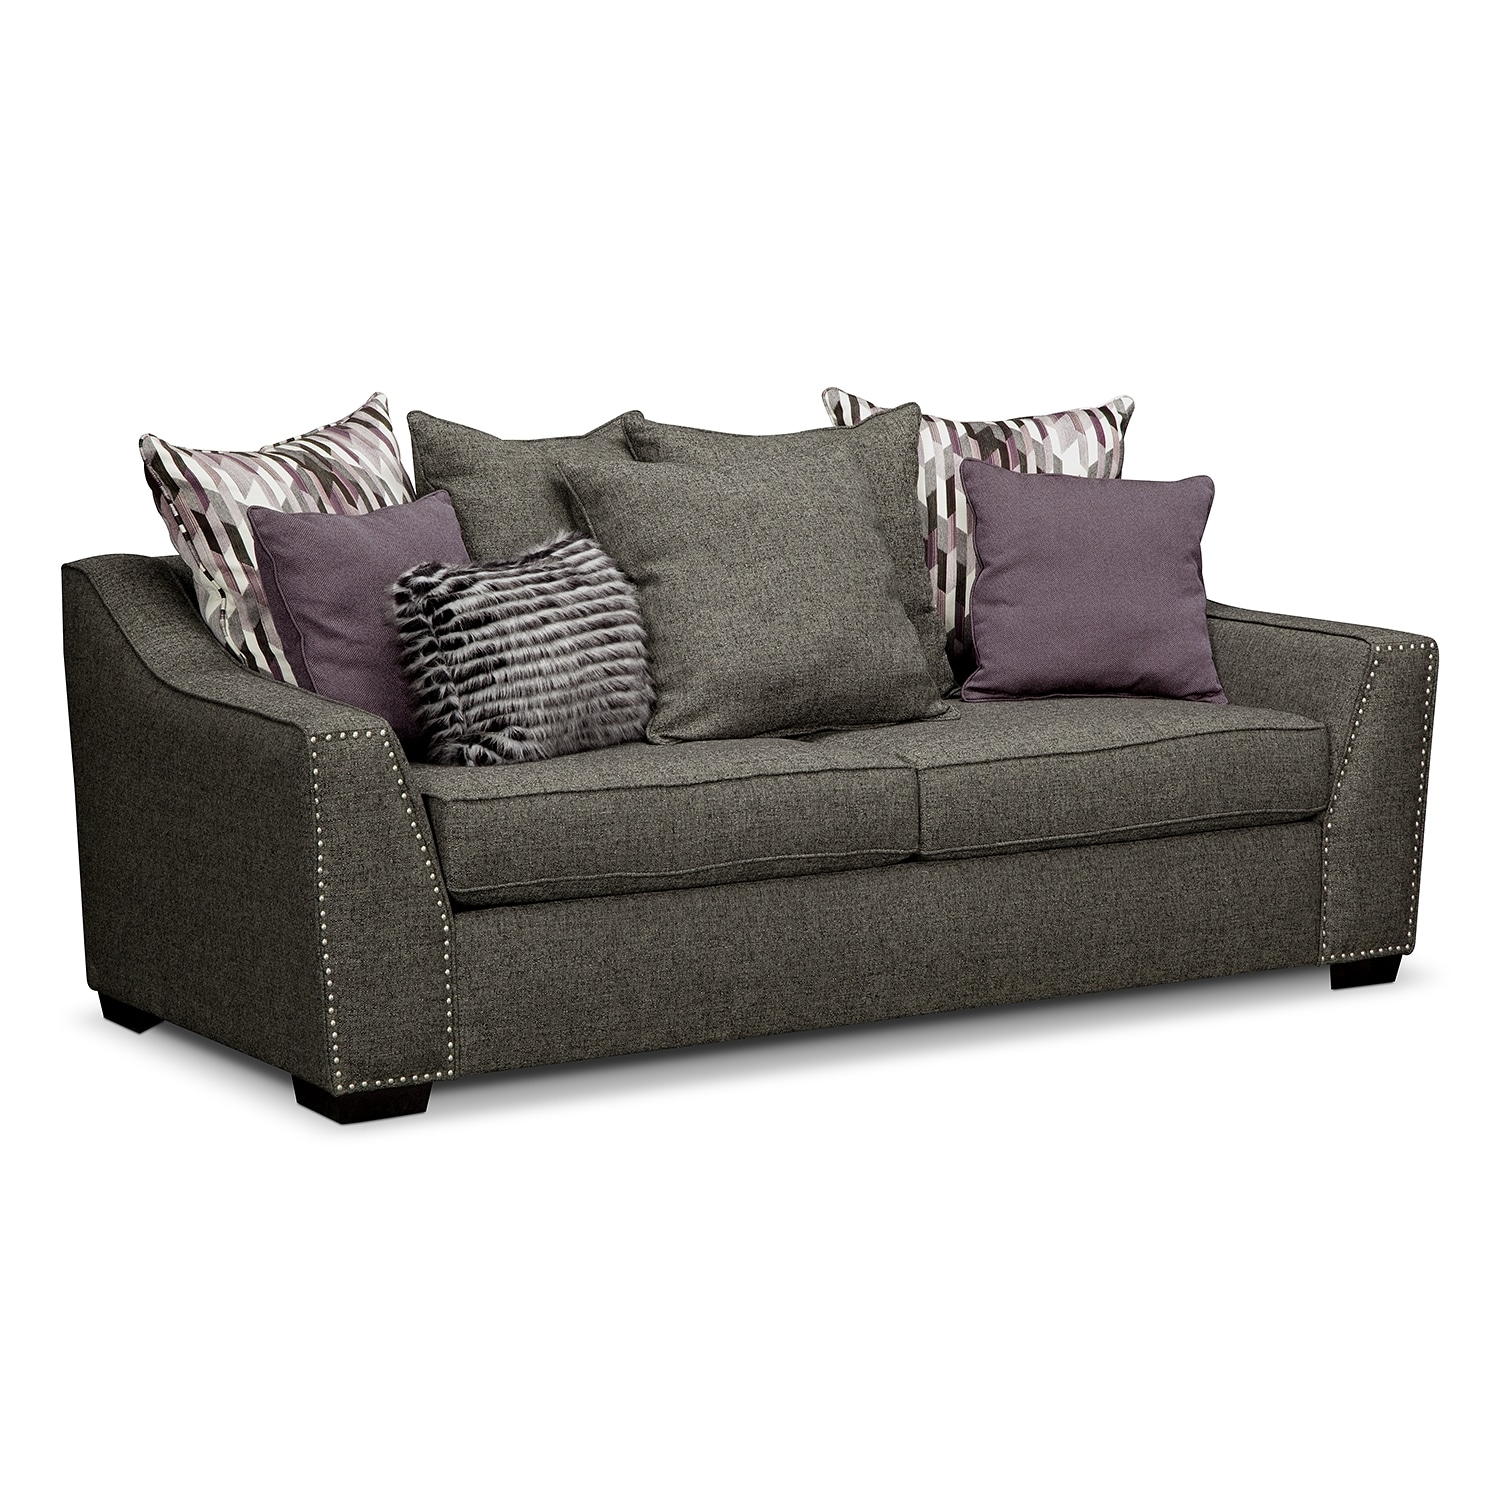 Living Room Furniture - Ritz Sofa